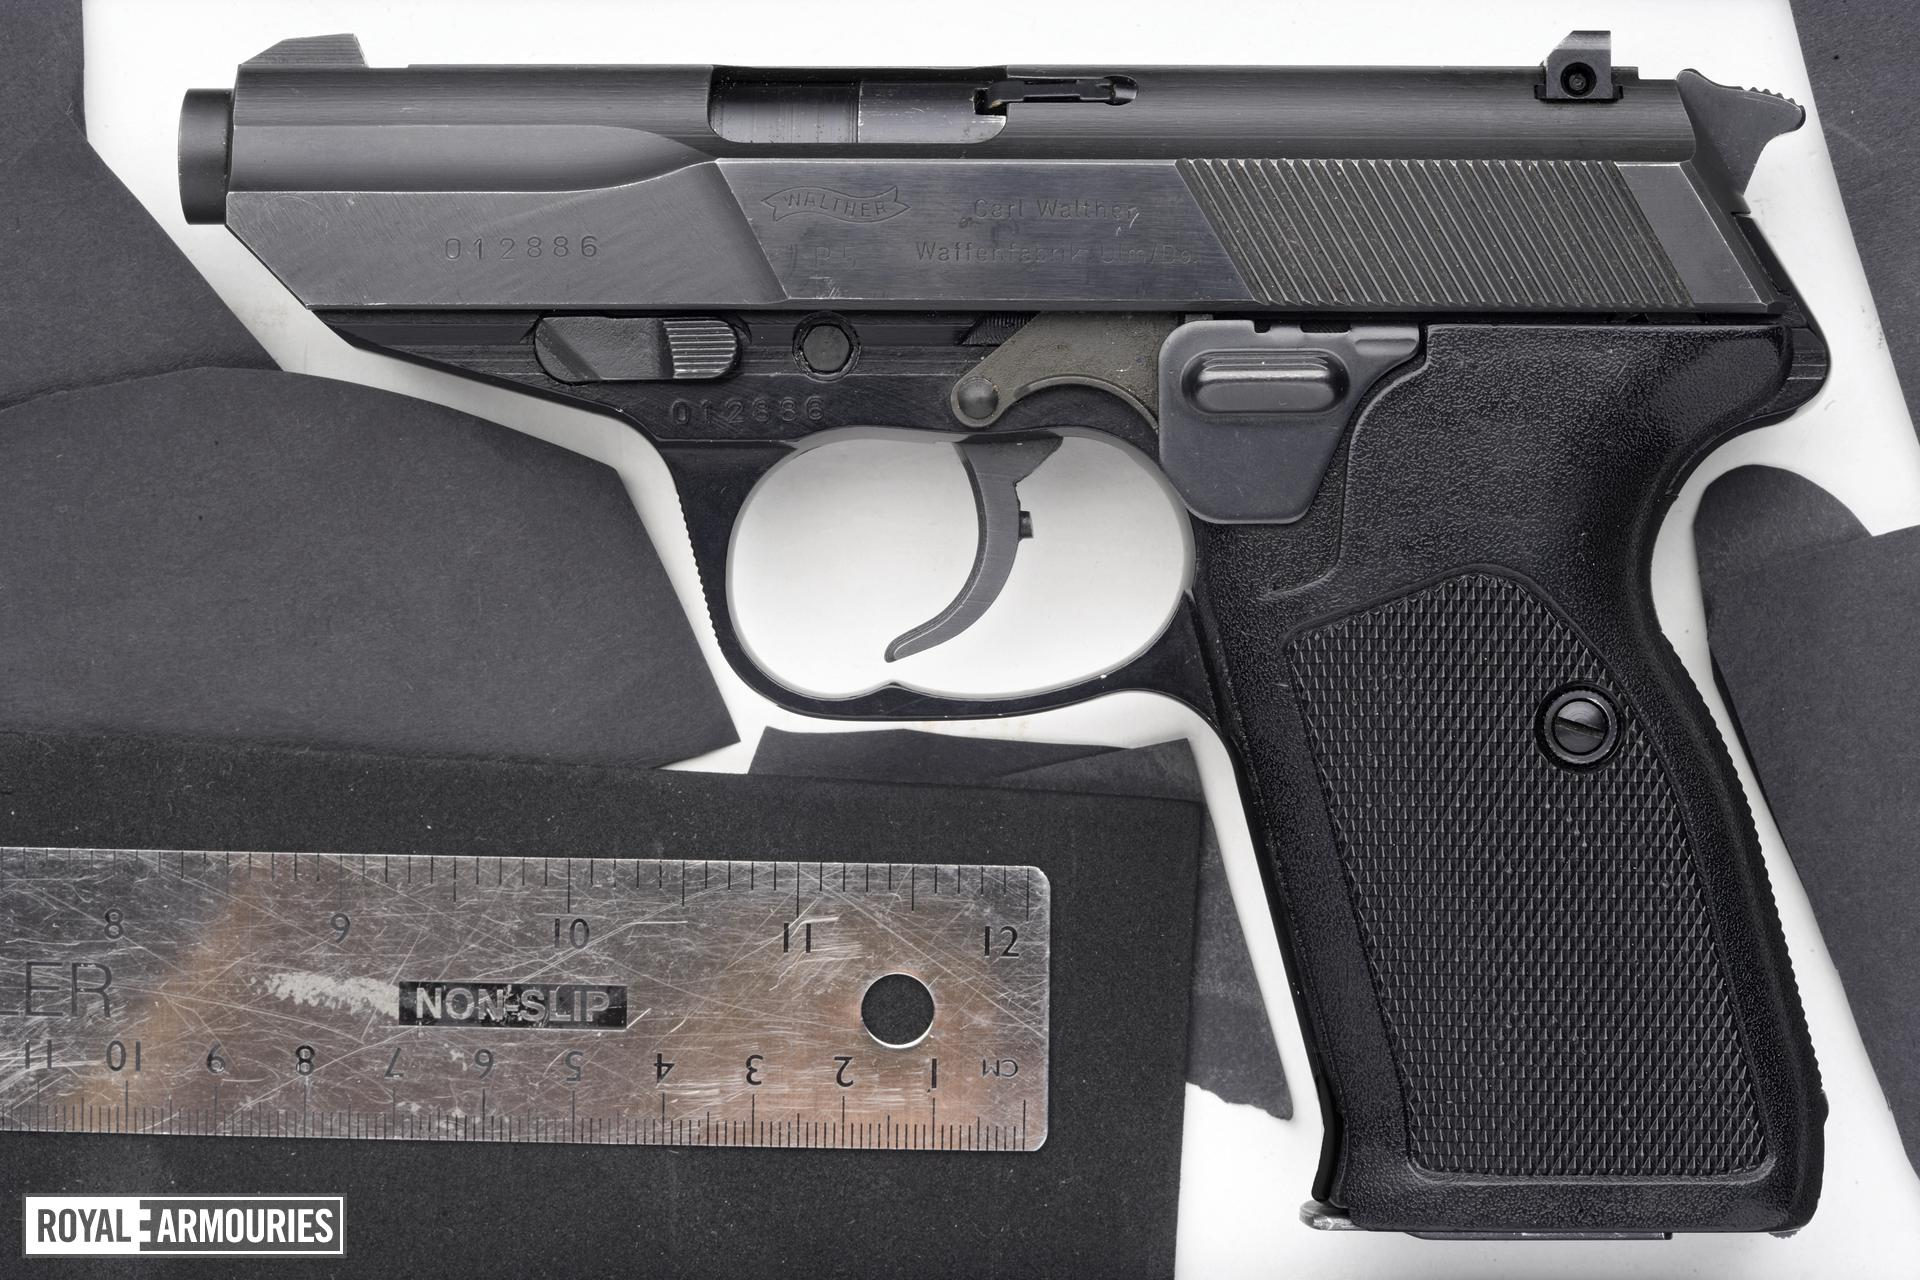 Centrefire self-loading pistol - Walther Model P5